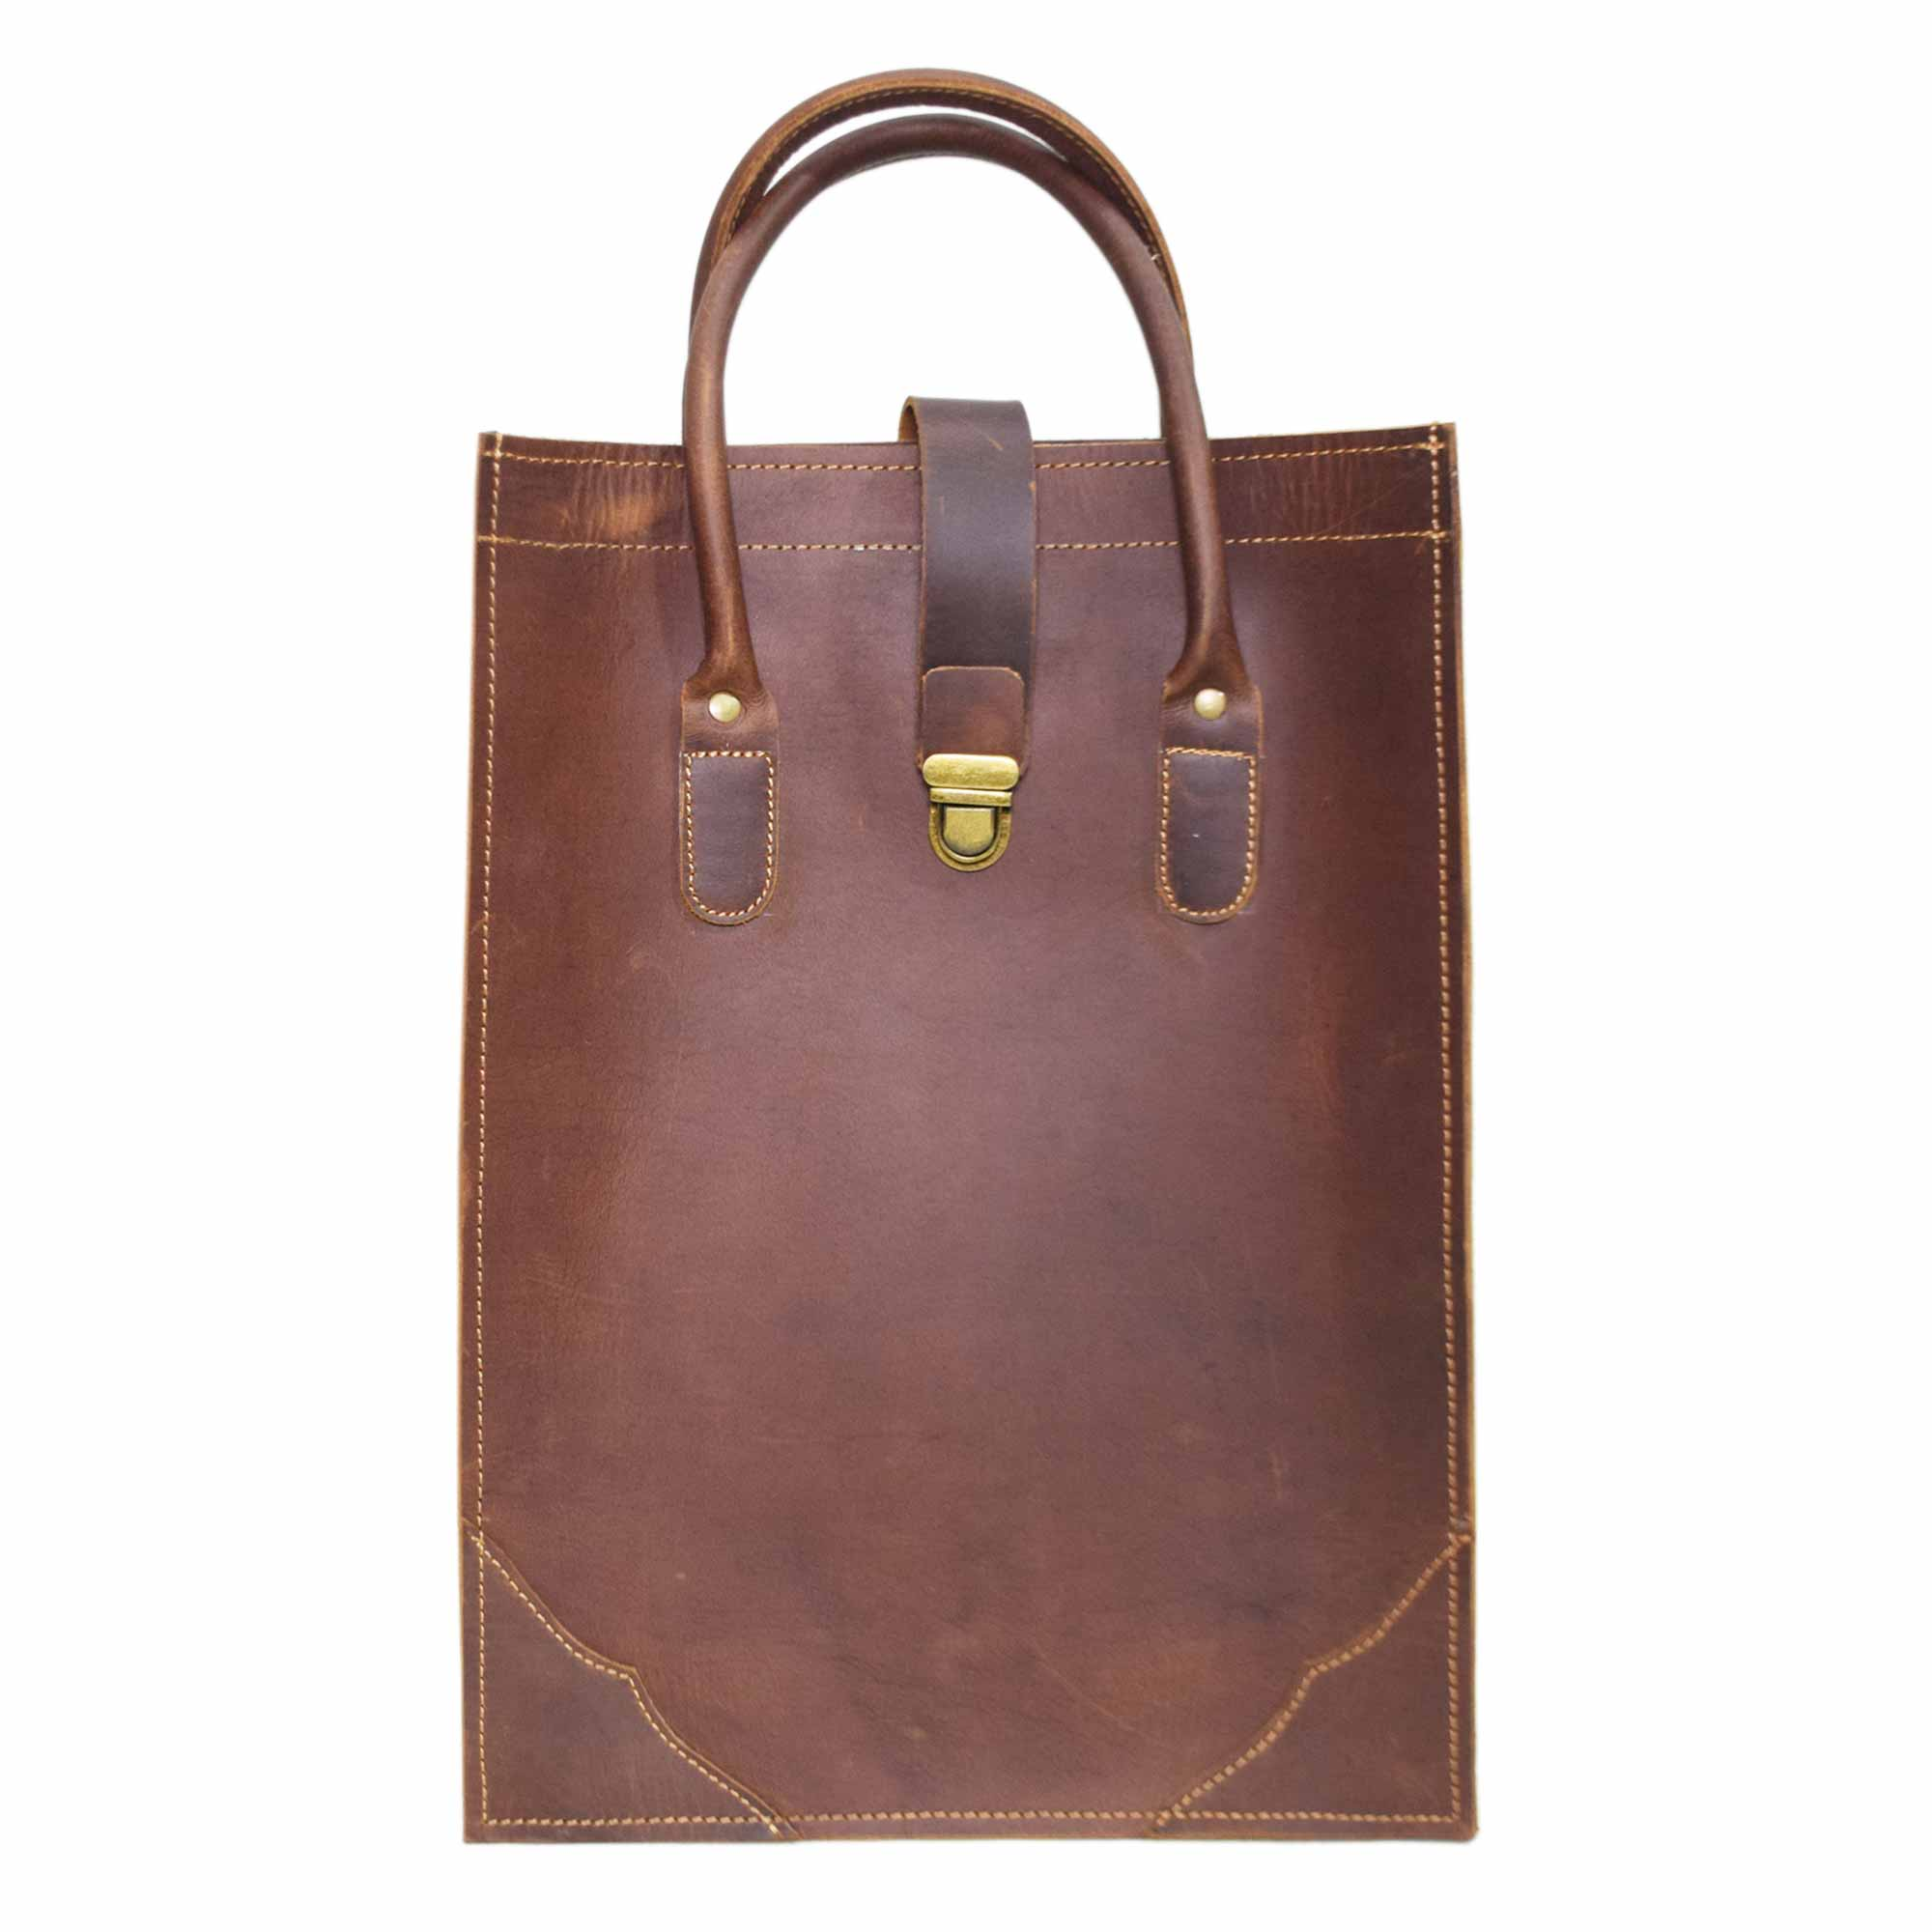 DARK BROWN LEATHER TOTE BAG WITH SHOULDER BELT